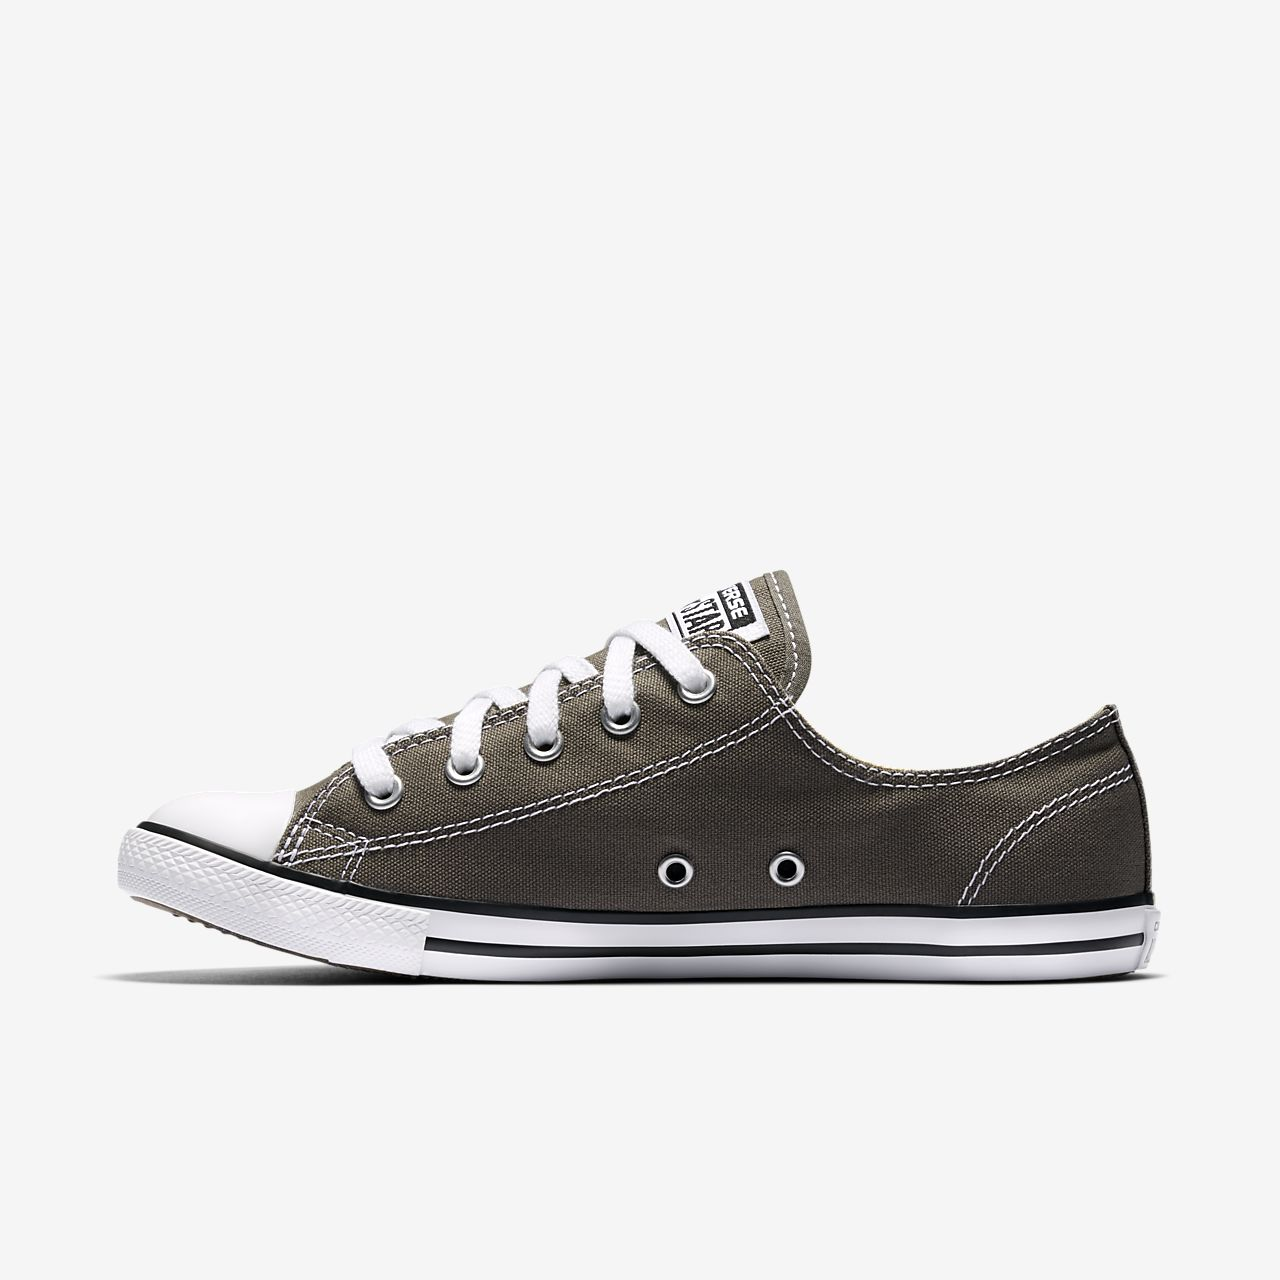 Converse Chuck Taylor All Star Dainty Low Top Women's Shoe